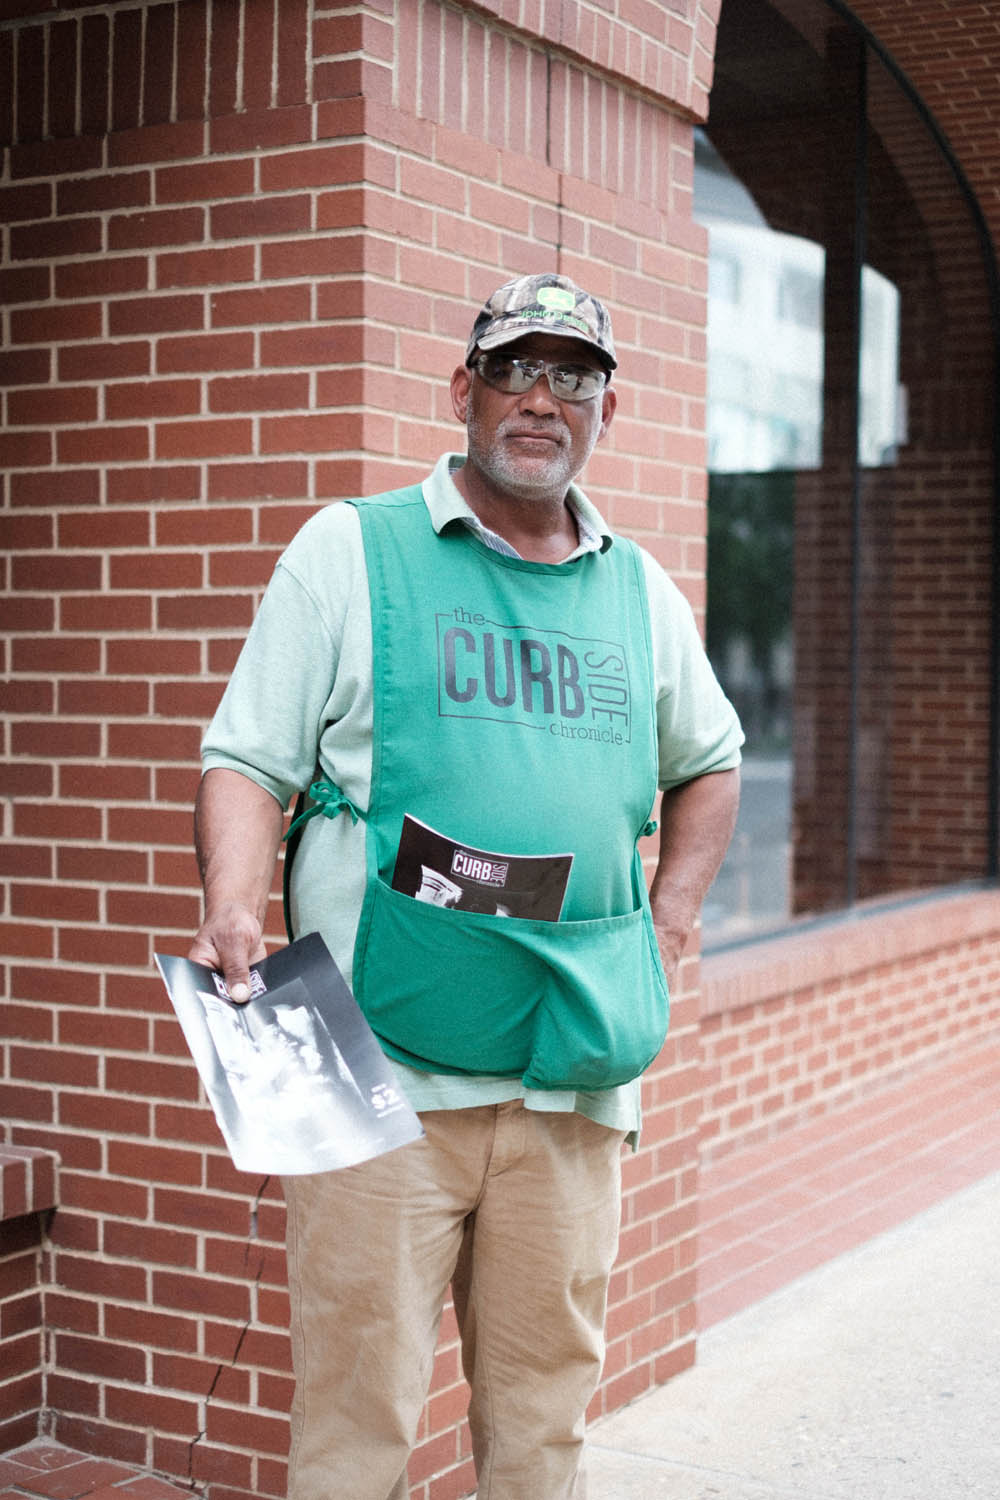 A Curbside Chronicle Vendor Portrait